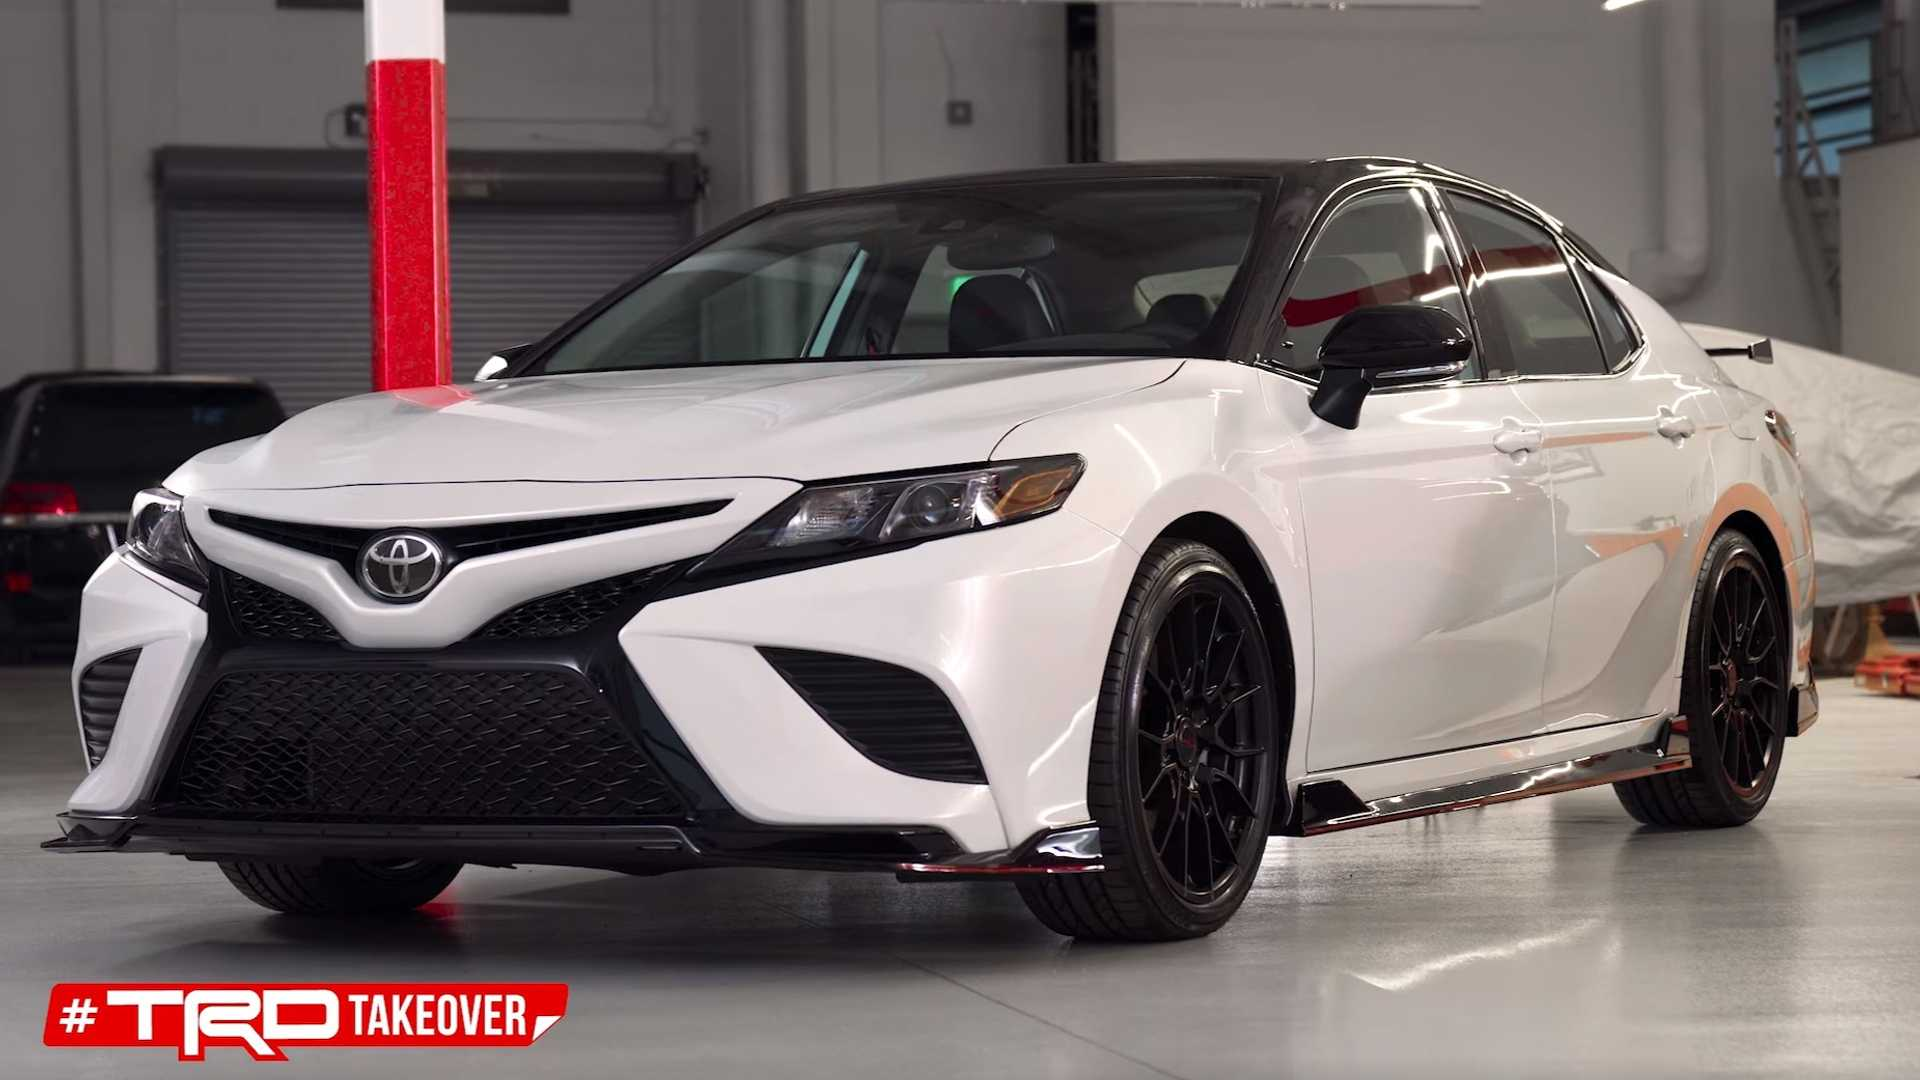 The Cheapest Toyota Camry V6 For 2020 Is The Trd